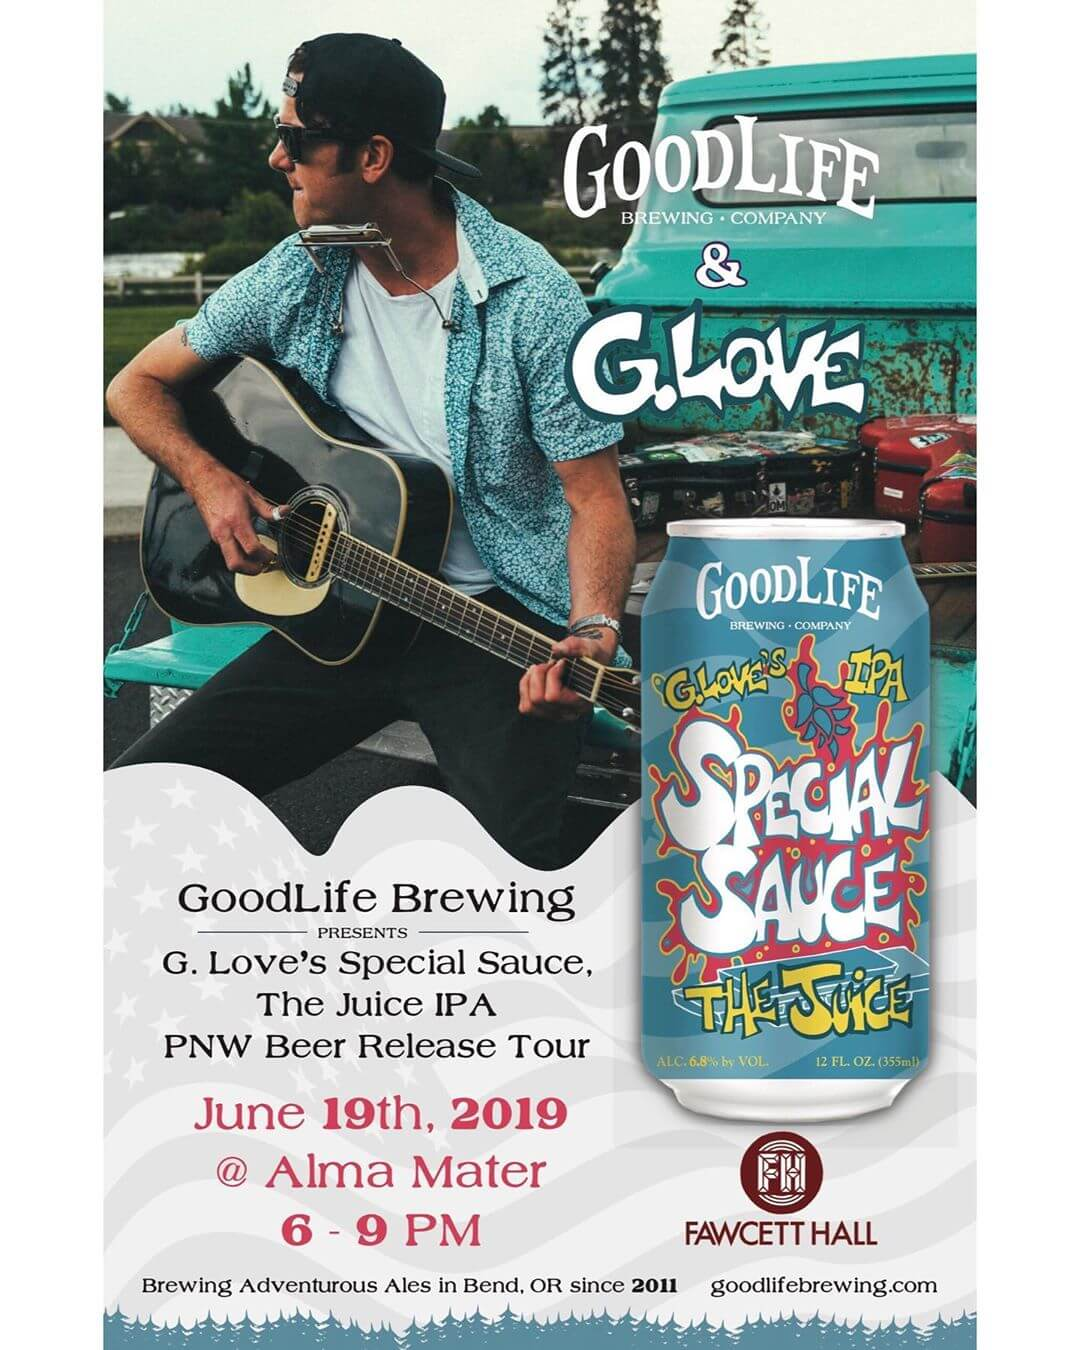 We have the last stop on the GoodLife Juice Tour tonight in #tacoma @almamatertacoma! Tickets are $5 which is being donated to the @southsoundsurfrider so they can help keep our waters clean. Doors open at 6pm and tickets are available for sale via the link in our bio! The Juice is loose and we hope to see you there!